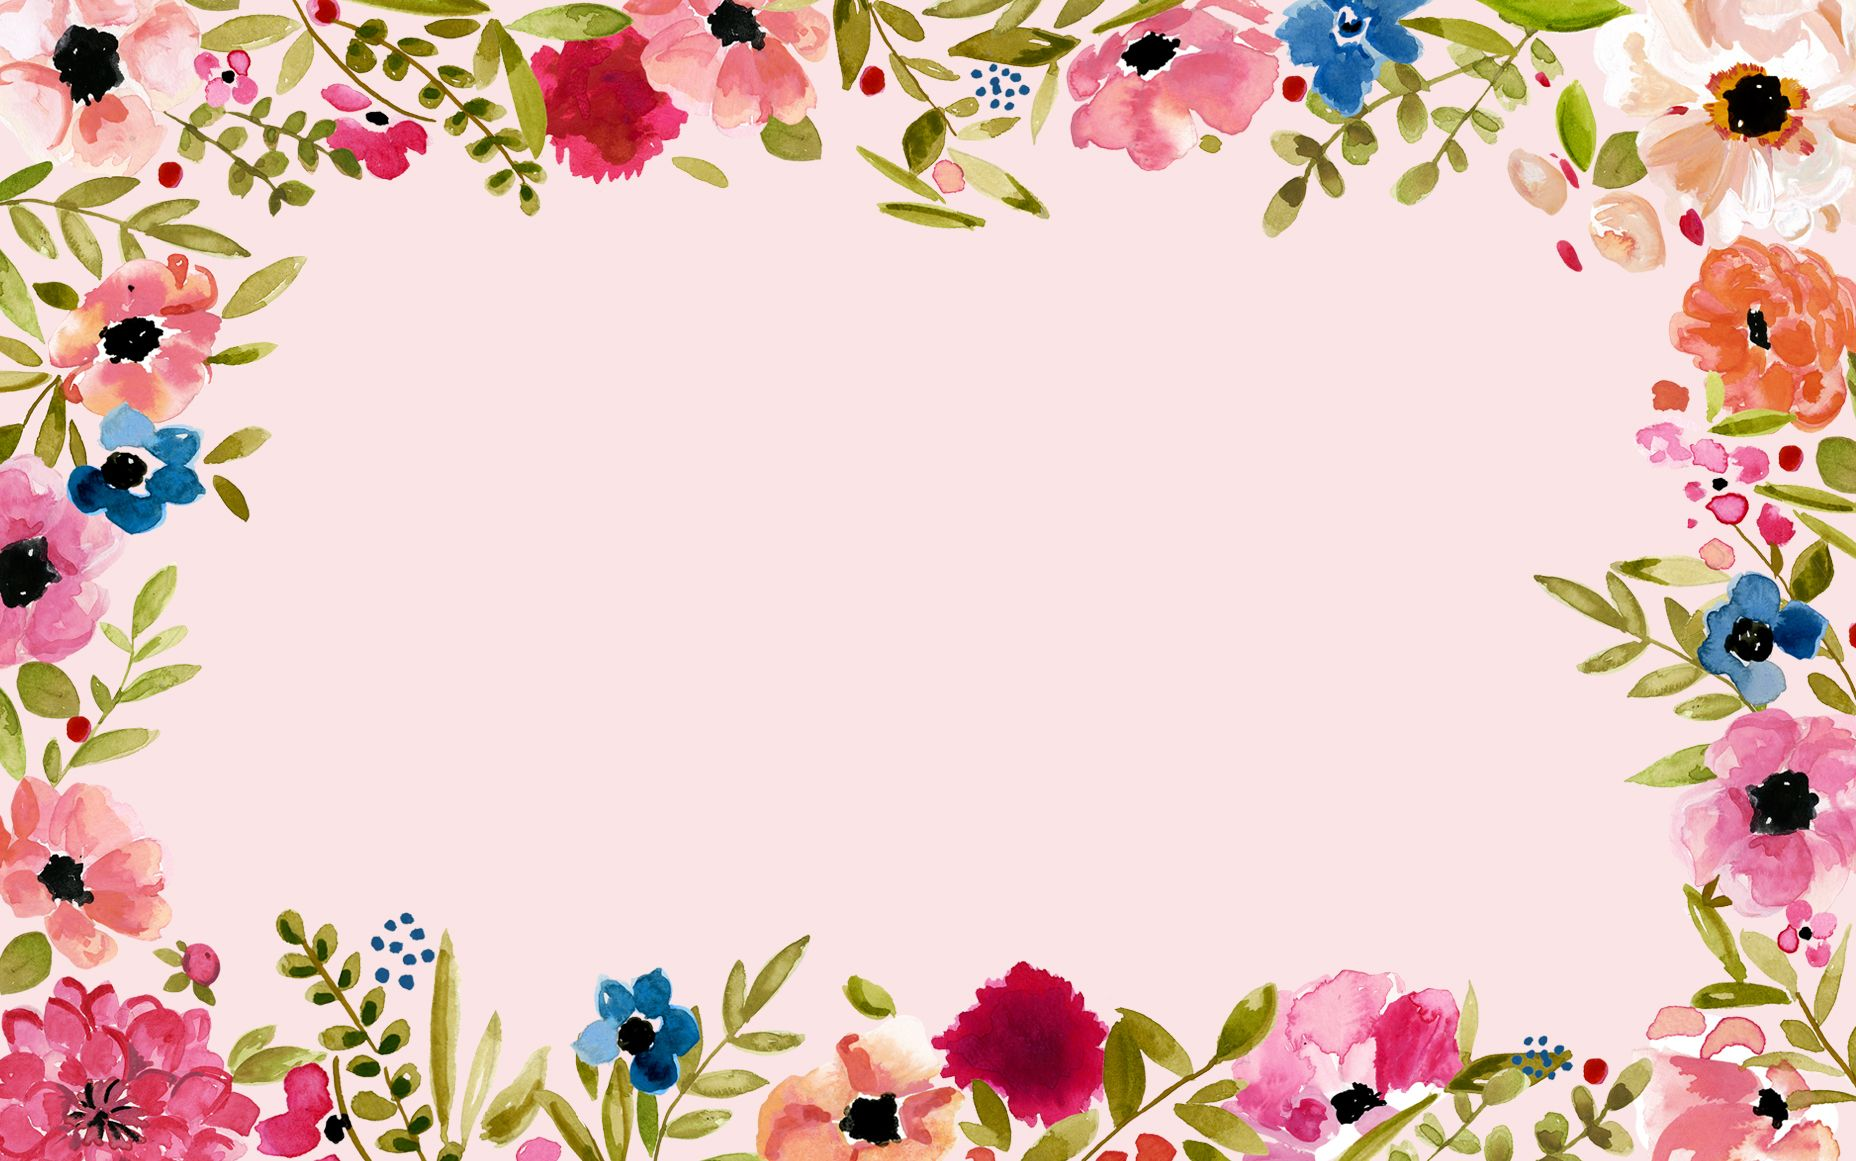 Floral Desktop Wallpaper 1920x1080